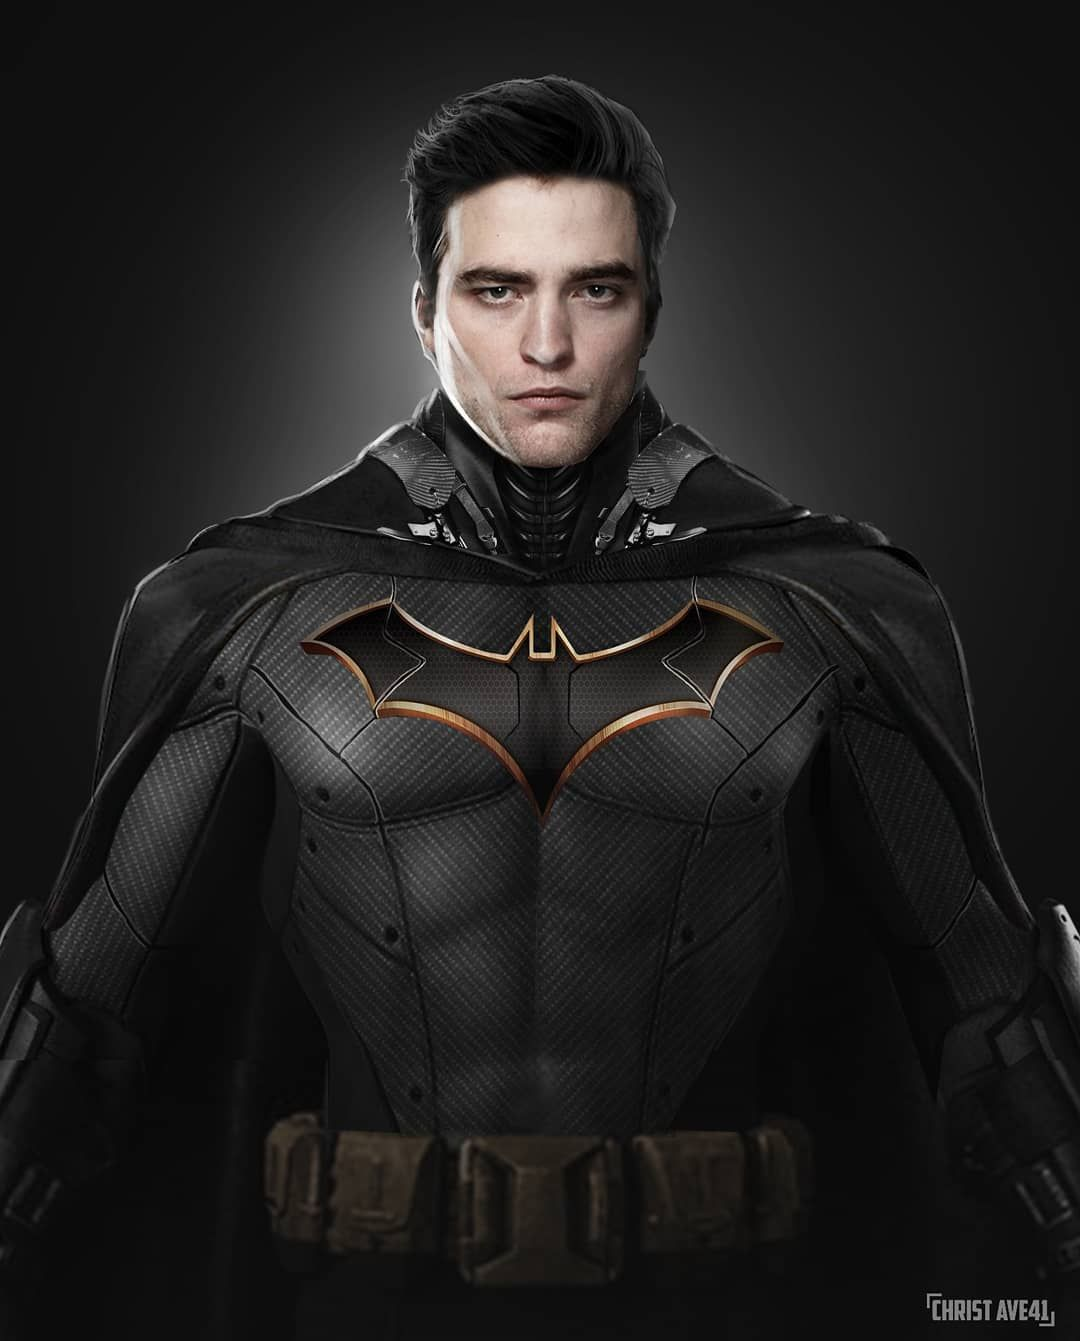 The full preview of the batsuit from my previous poster of ...